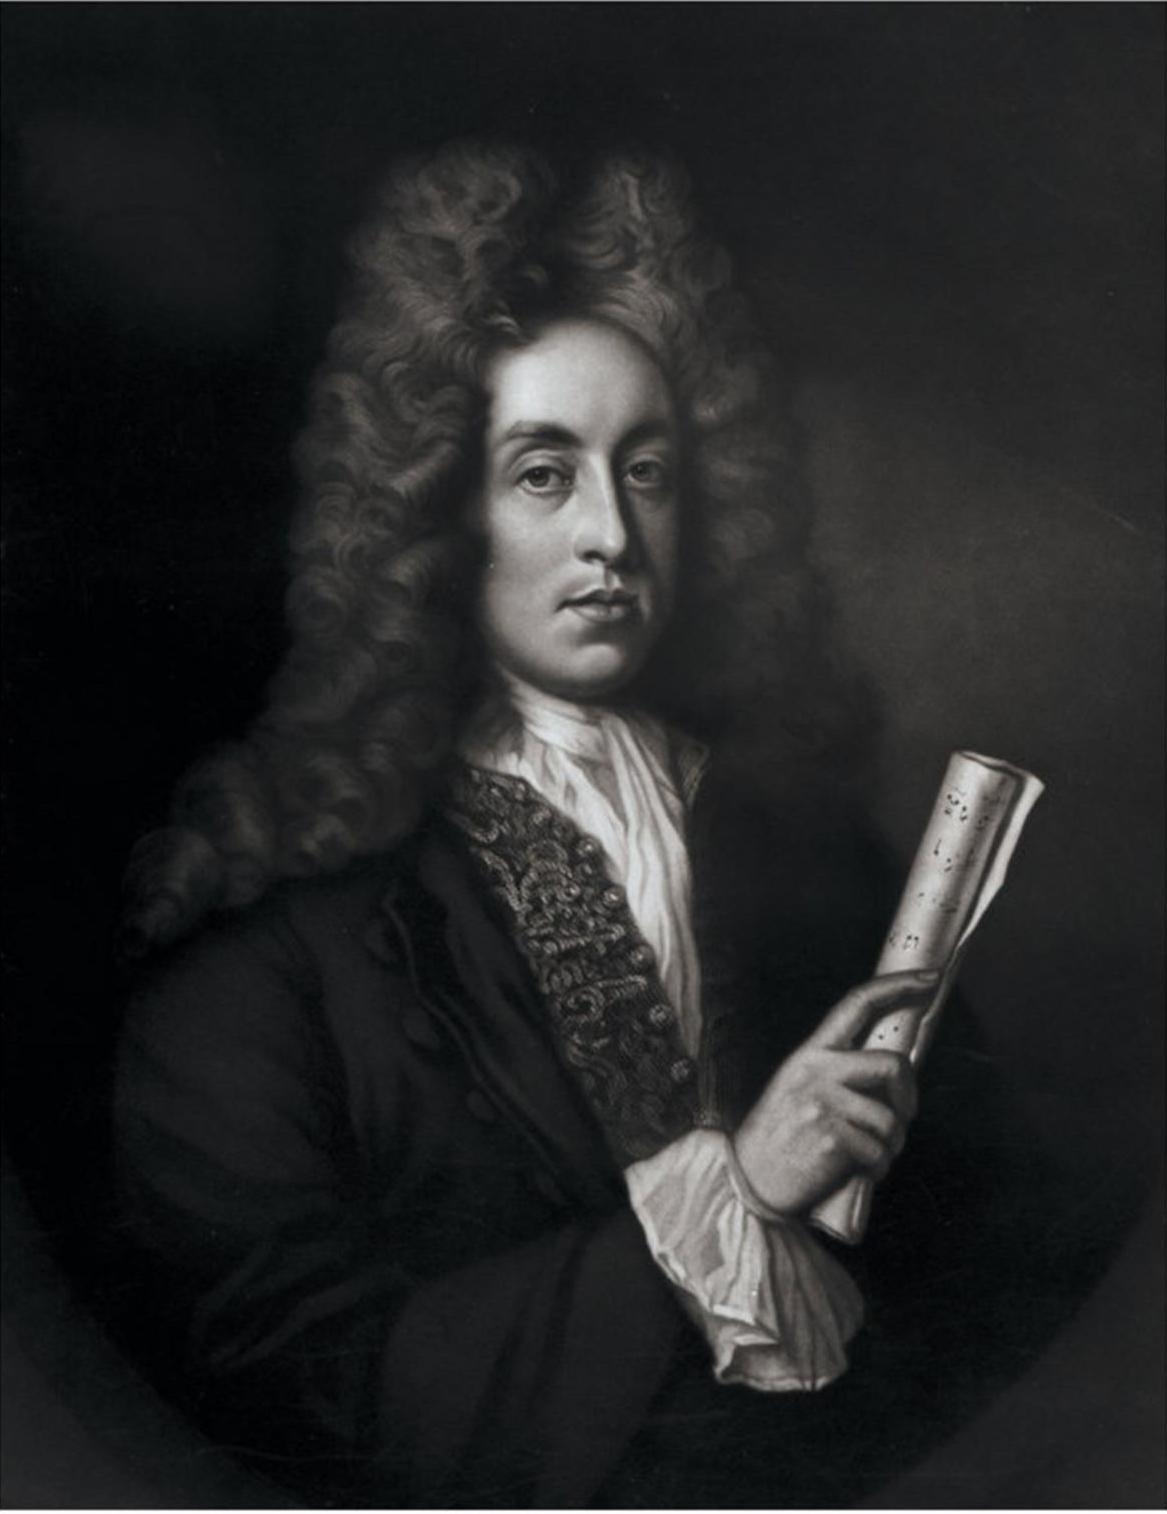 Henry_Purcell_(composer)